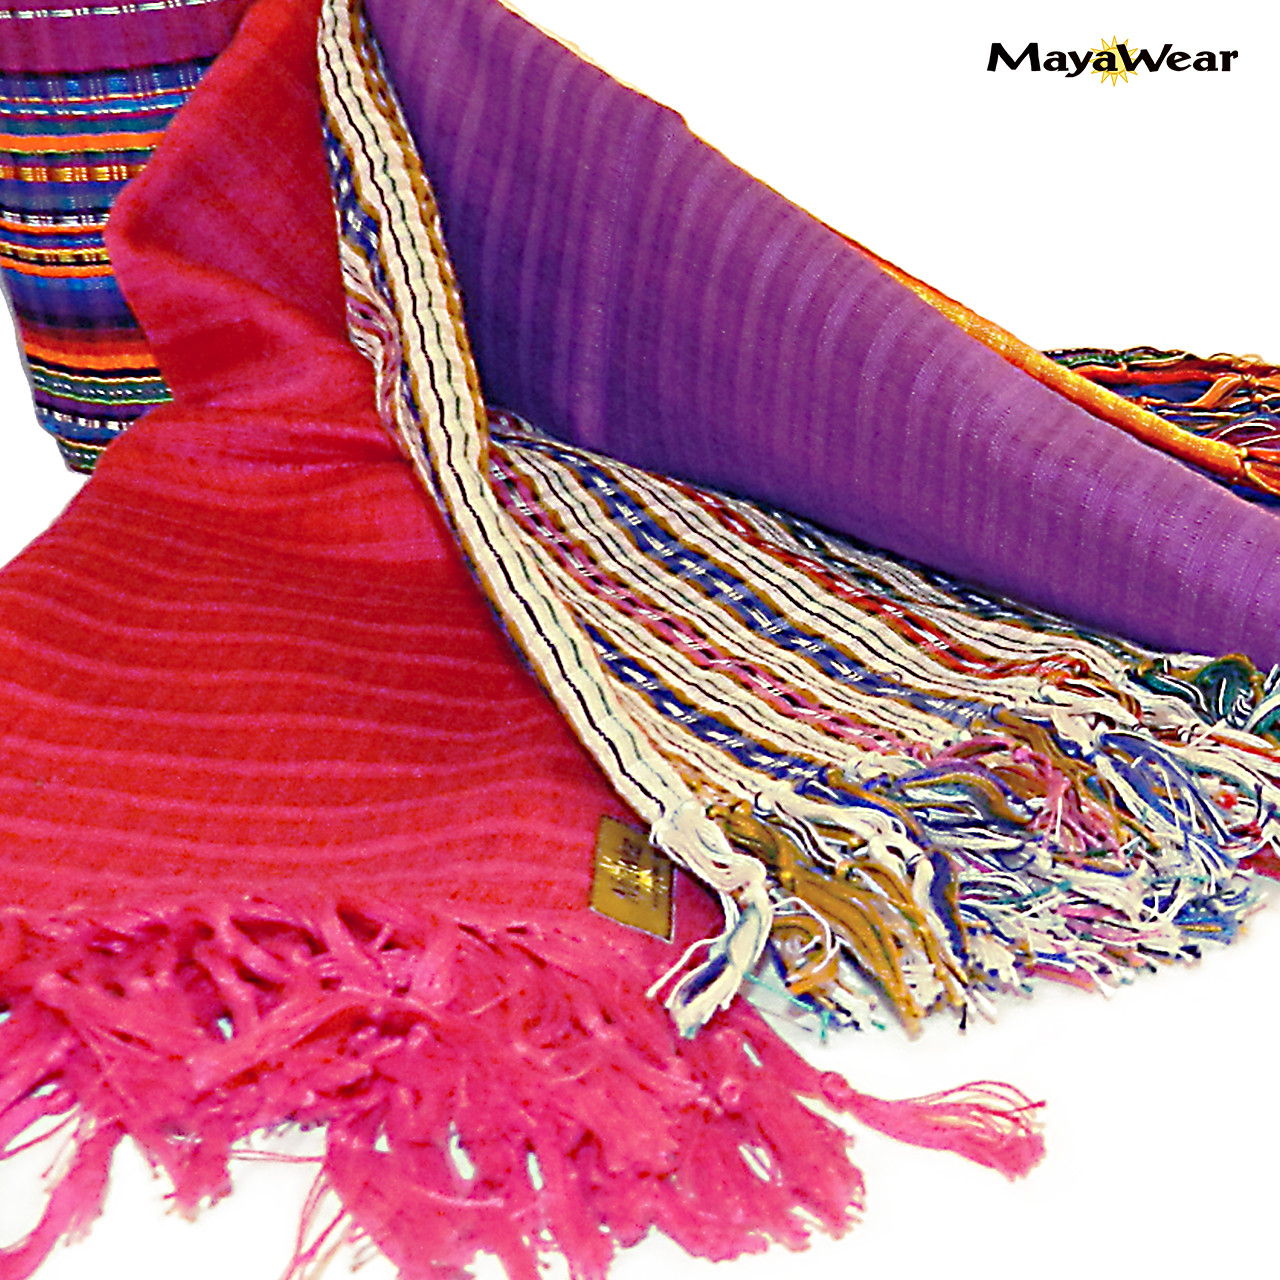 100% Cotton Hand Woven. Made in Guatemala.